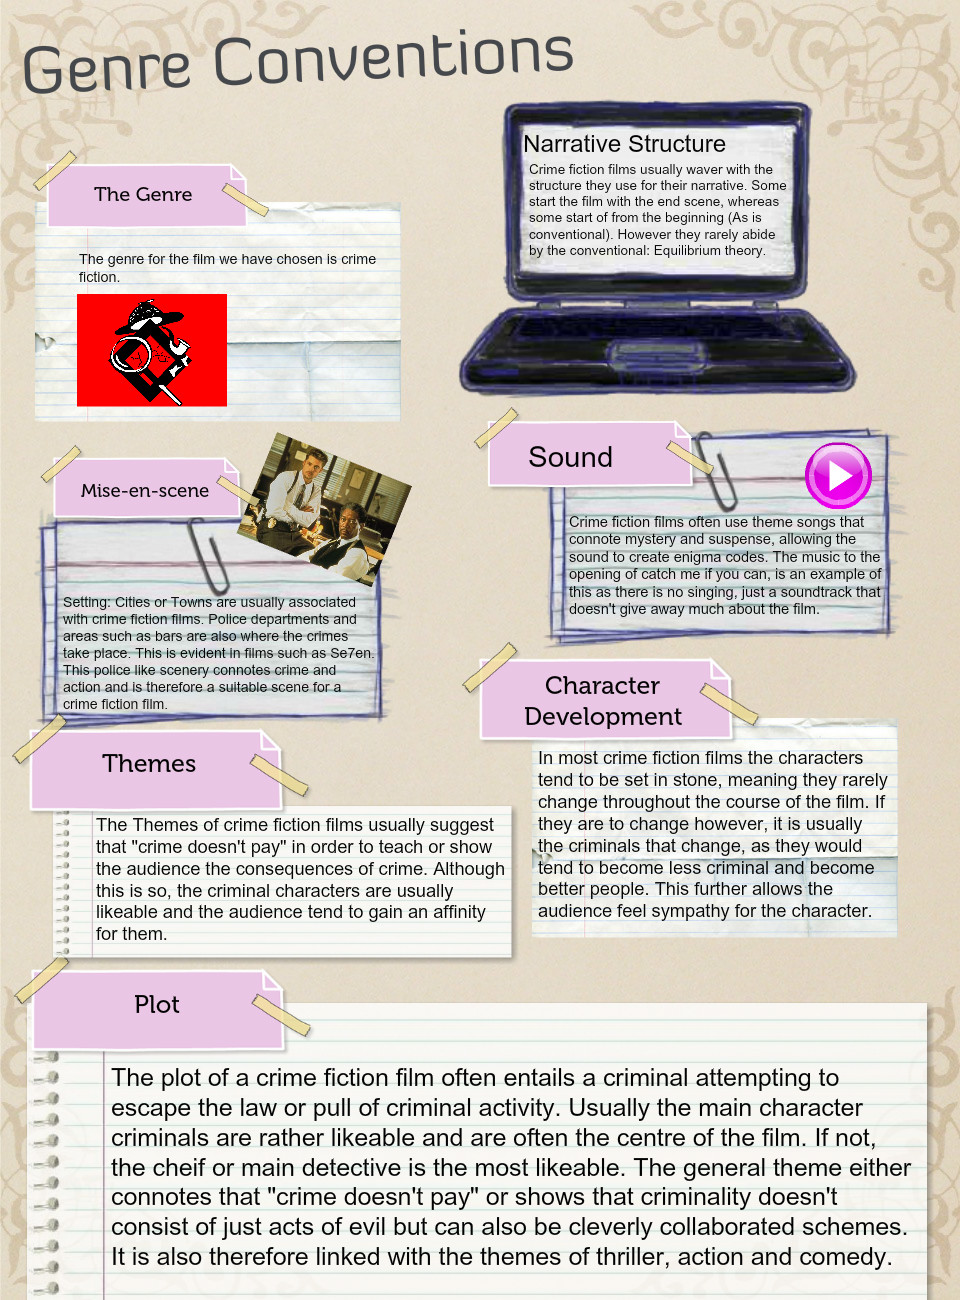 Genre Conventions: text, images, music, video | Glogster EDU